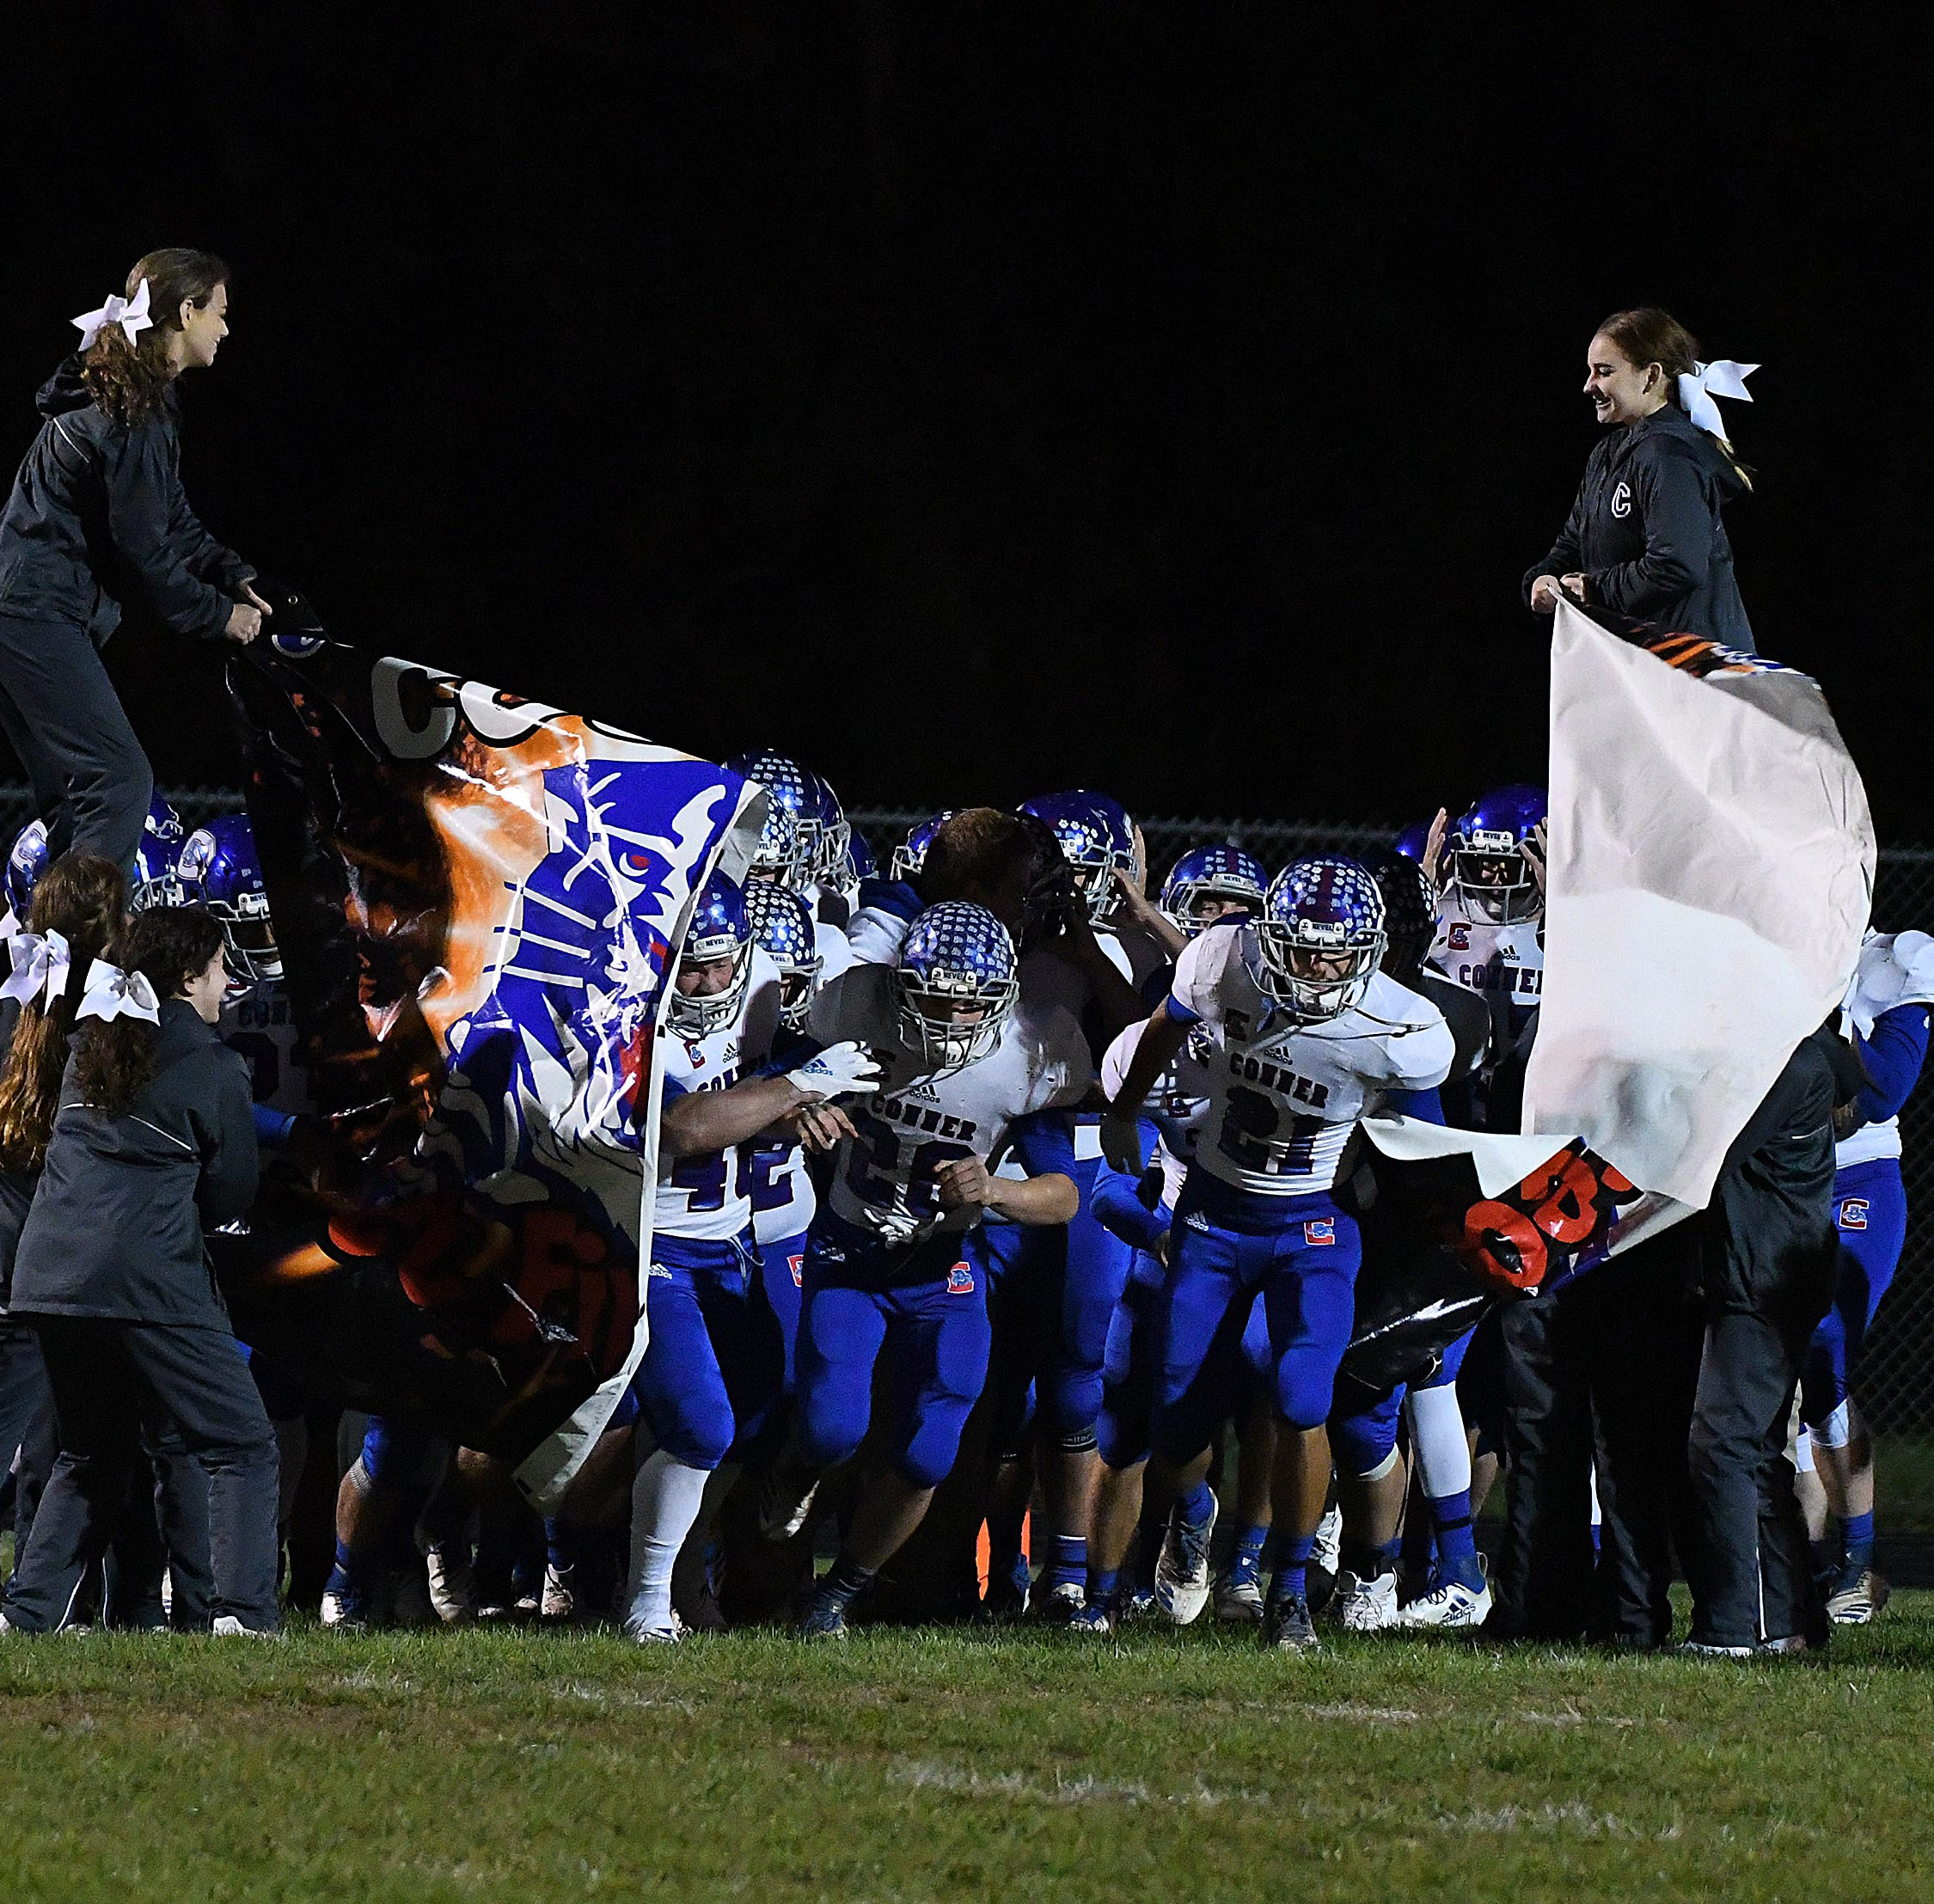 Conner runs onto the field before the game against Cooper in the Skyline Chili Crosstown Showdown at Cooper High School, Union, KY, Friday Oct. 19, 2018